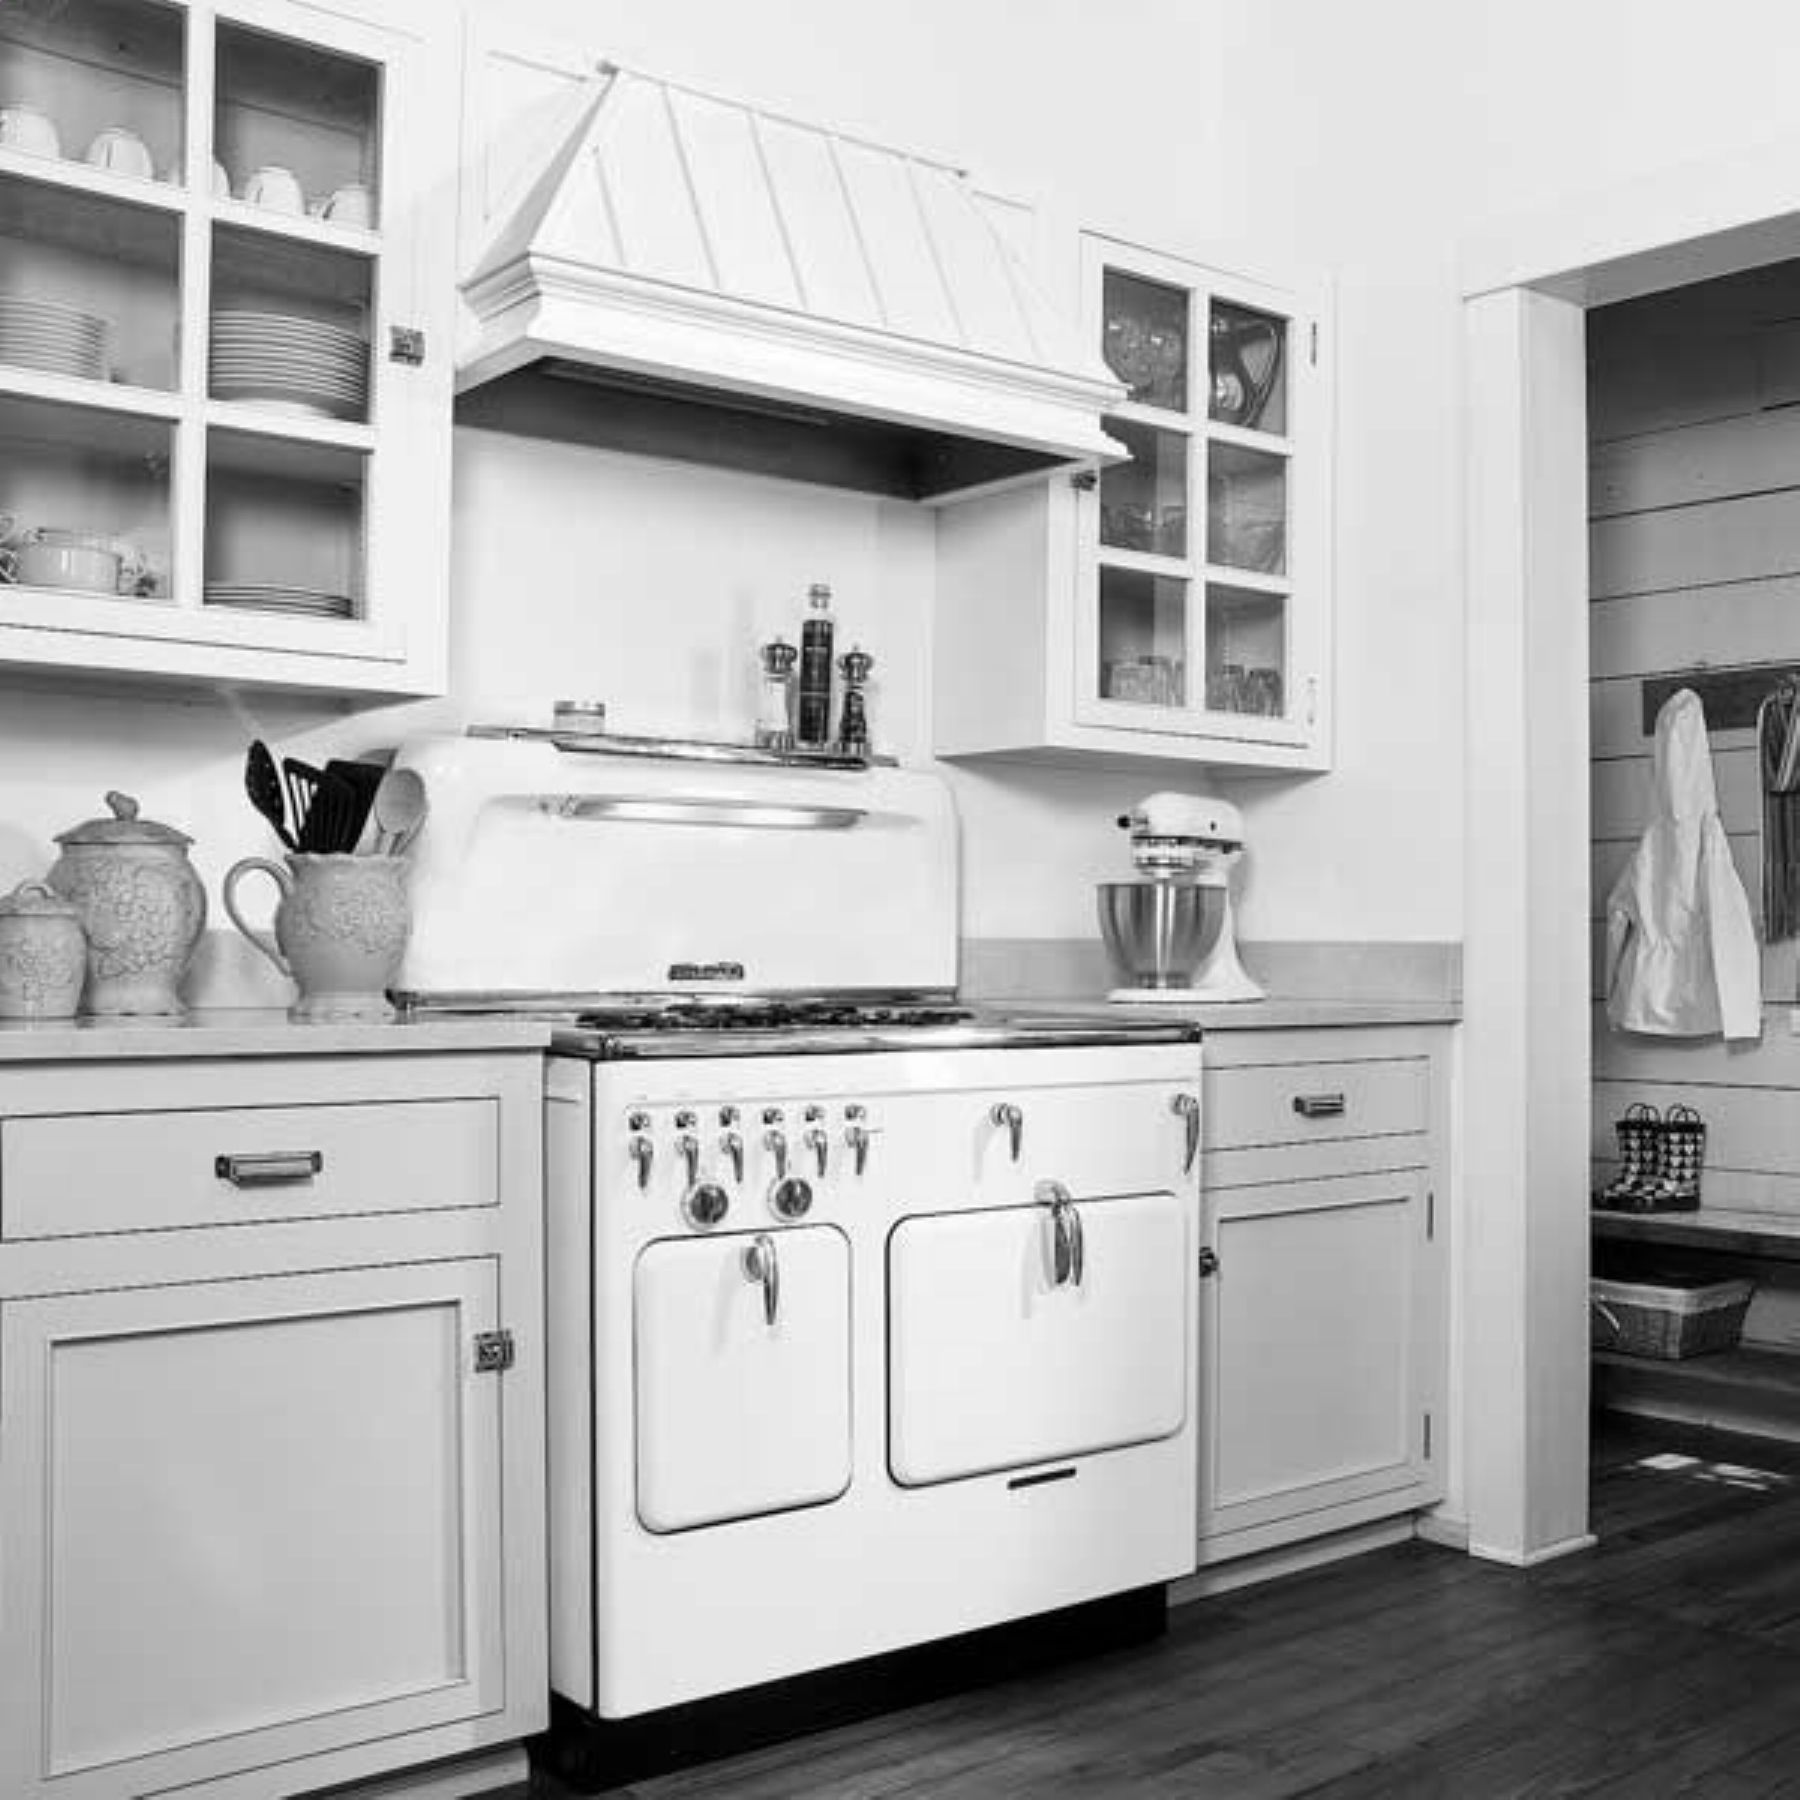 twotoned painted inside to match, butcher block